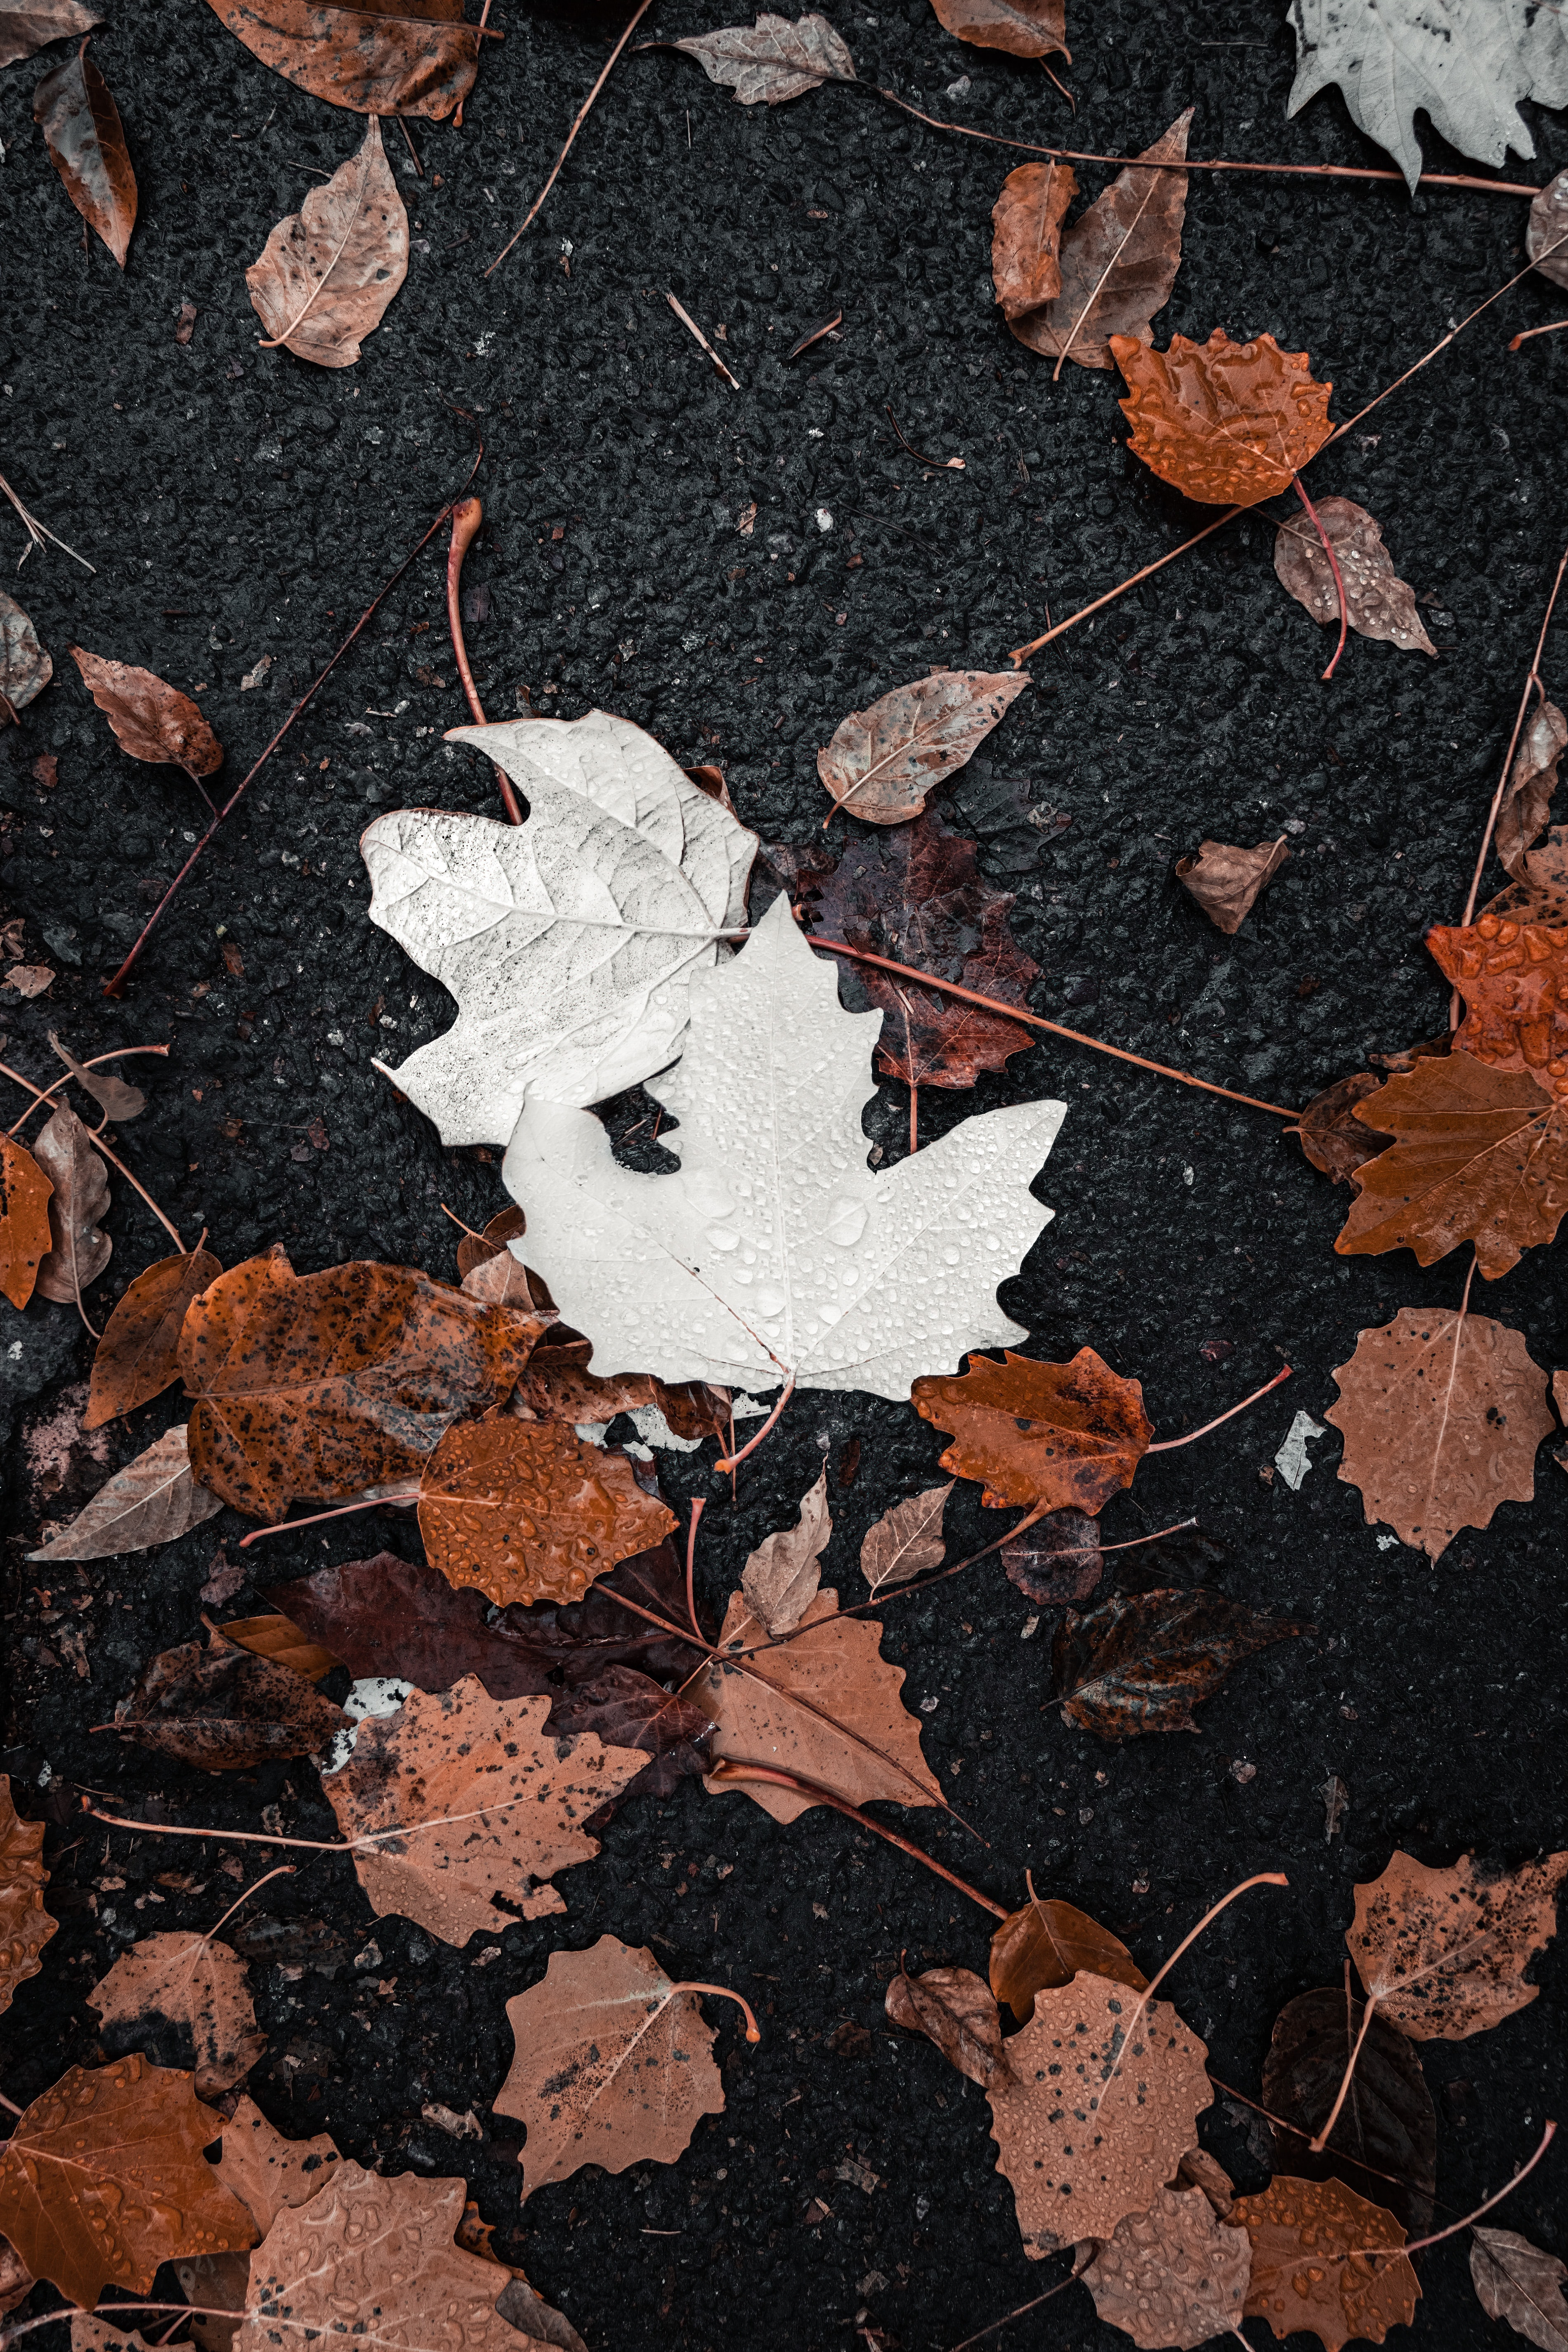 110372 download wallpaper Nature, Leaves, Drops, Water, Autumn screensavers and pictures for free